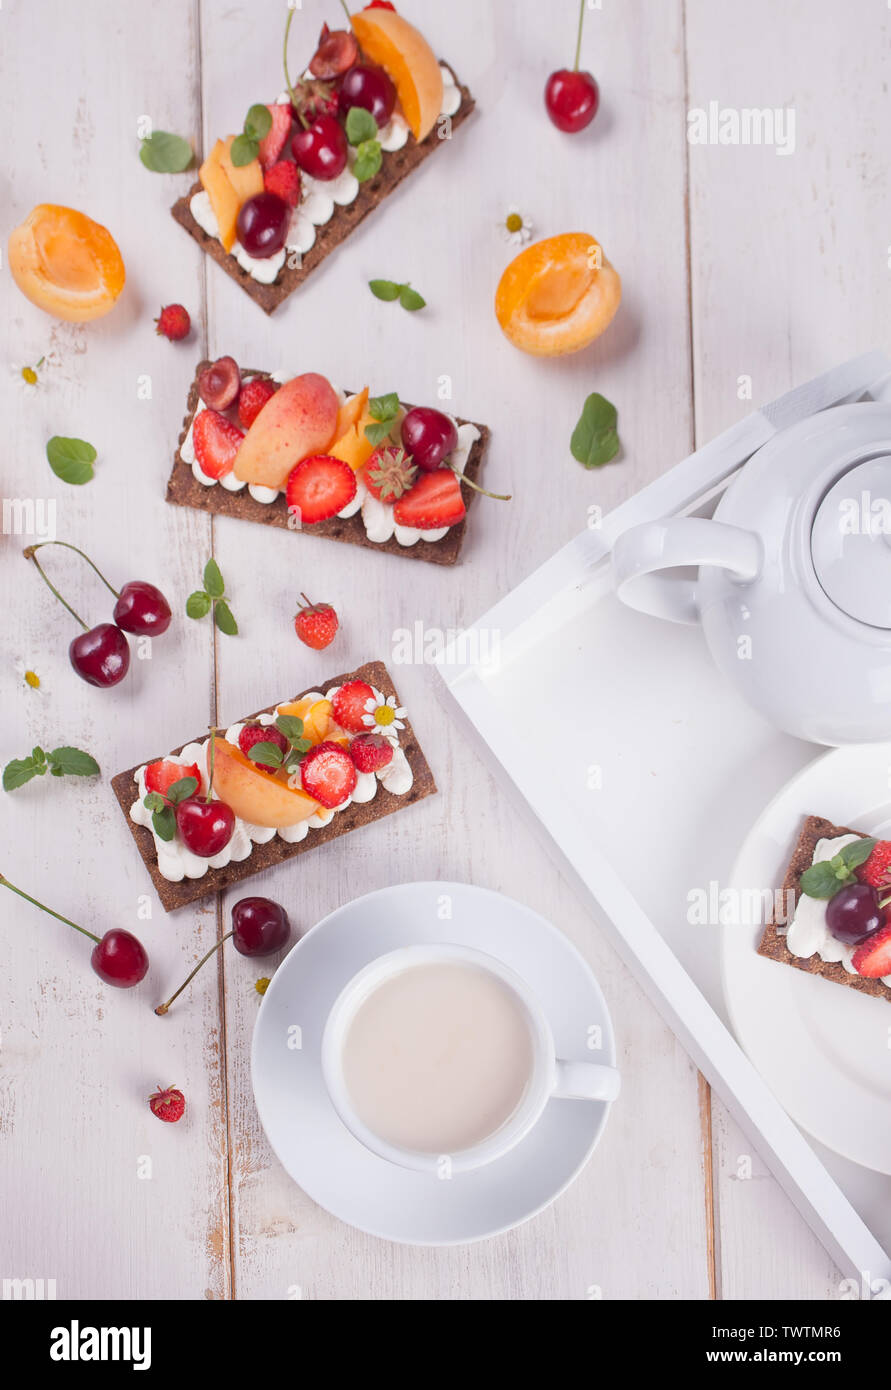 Crisp fitness health bread with creme cheese, fruit and berries and cup of tea on the white plate on the white wooden background. Top view. - Stock Image